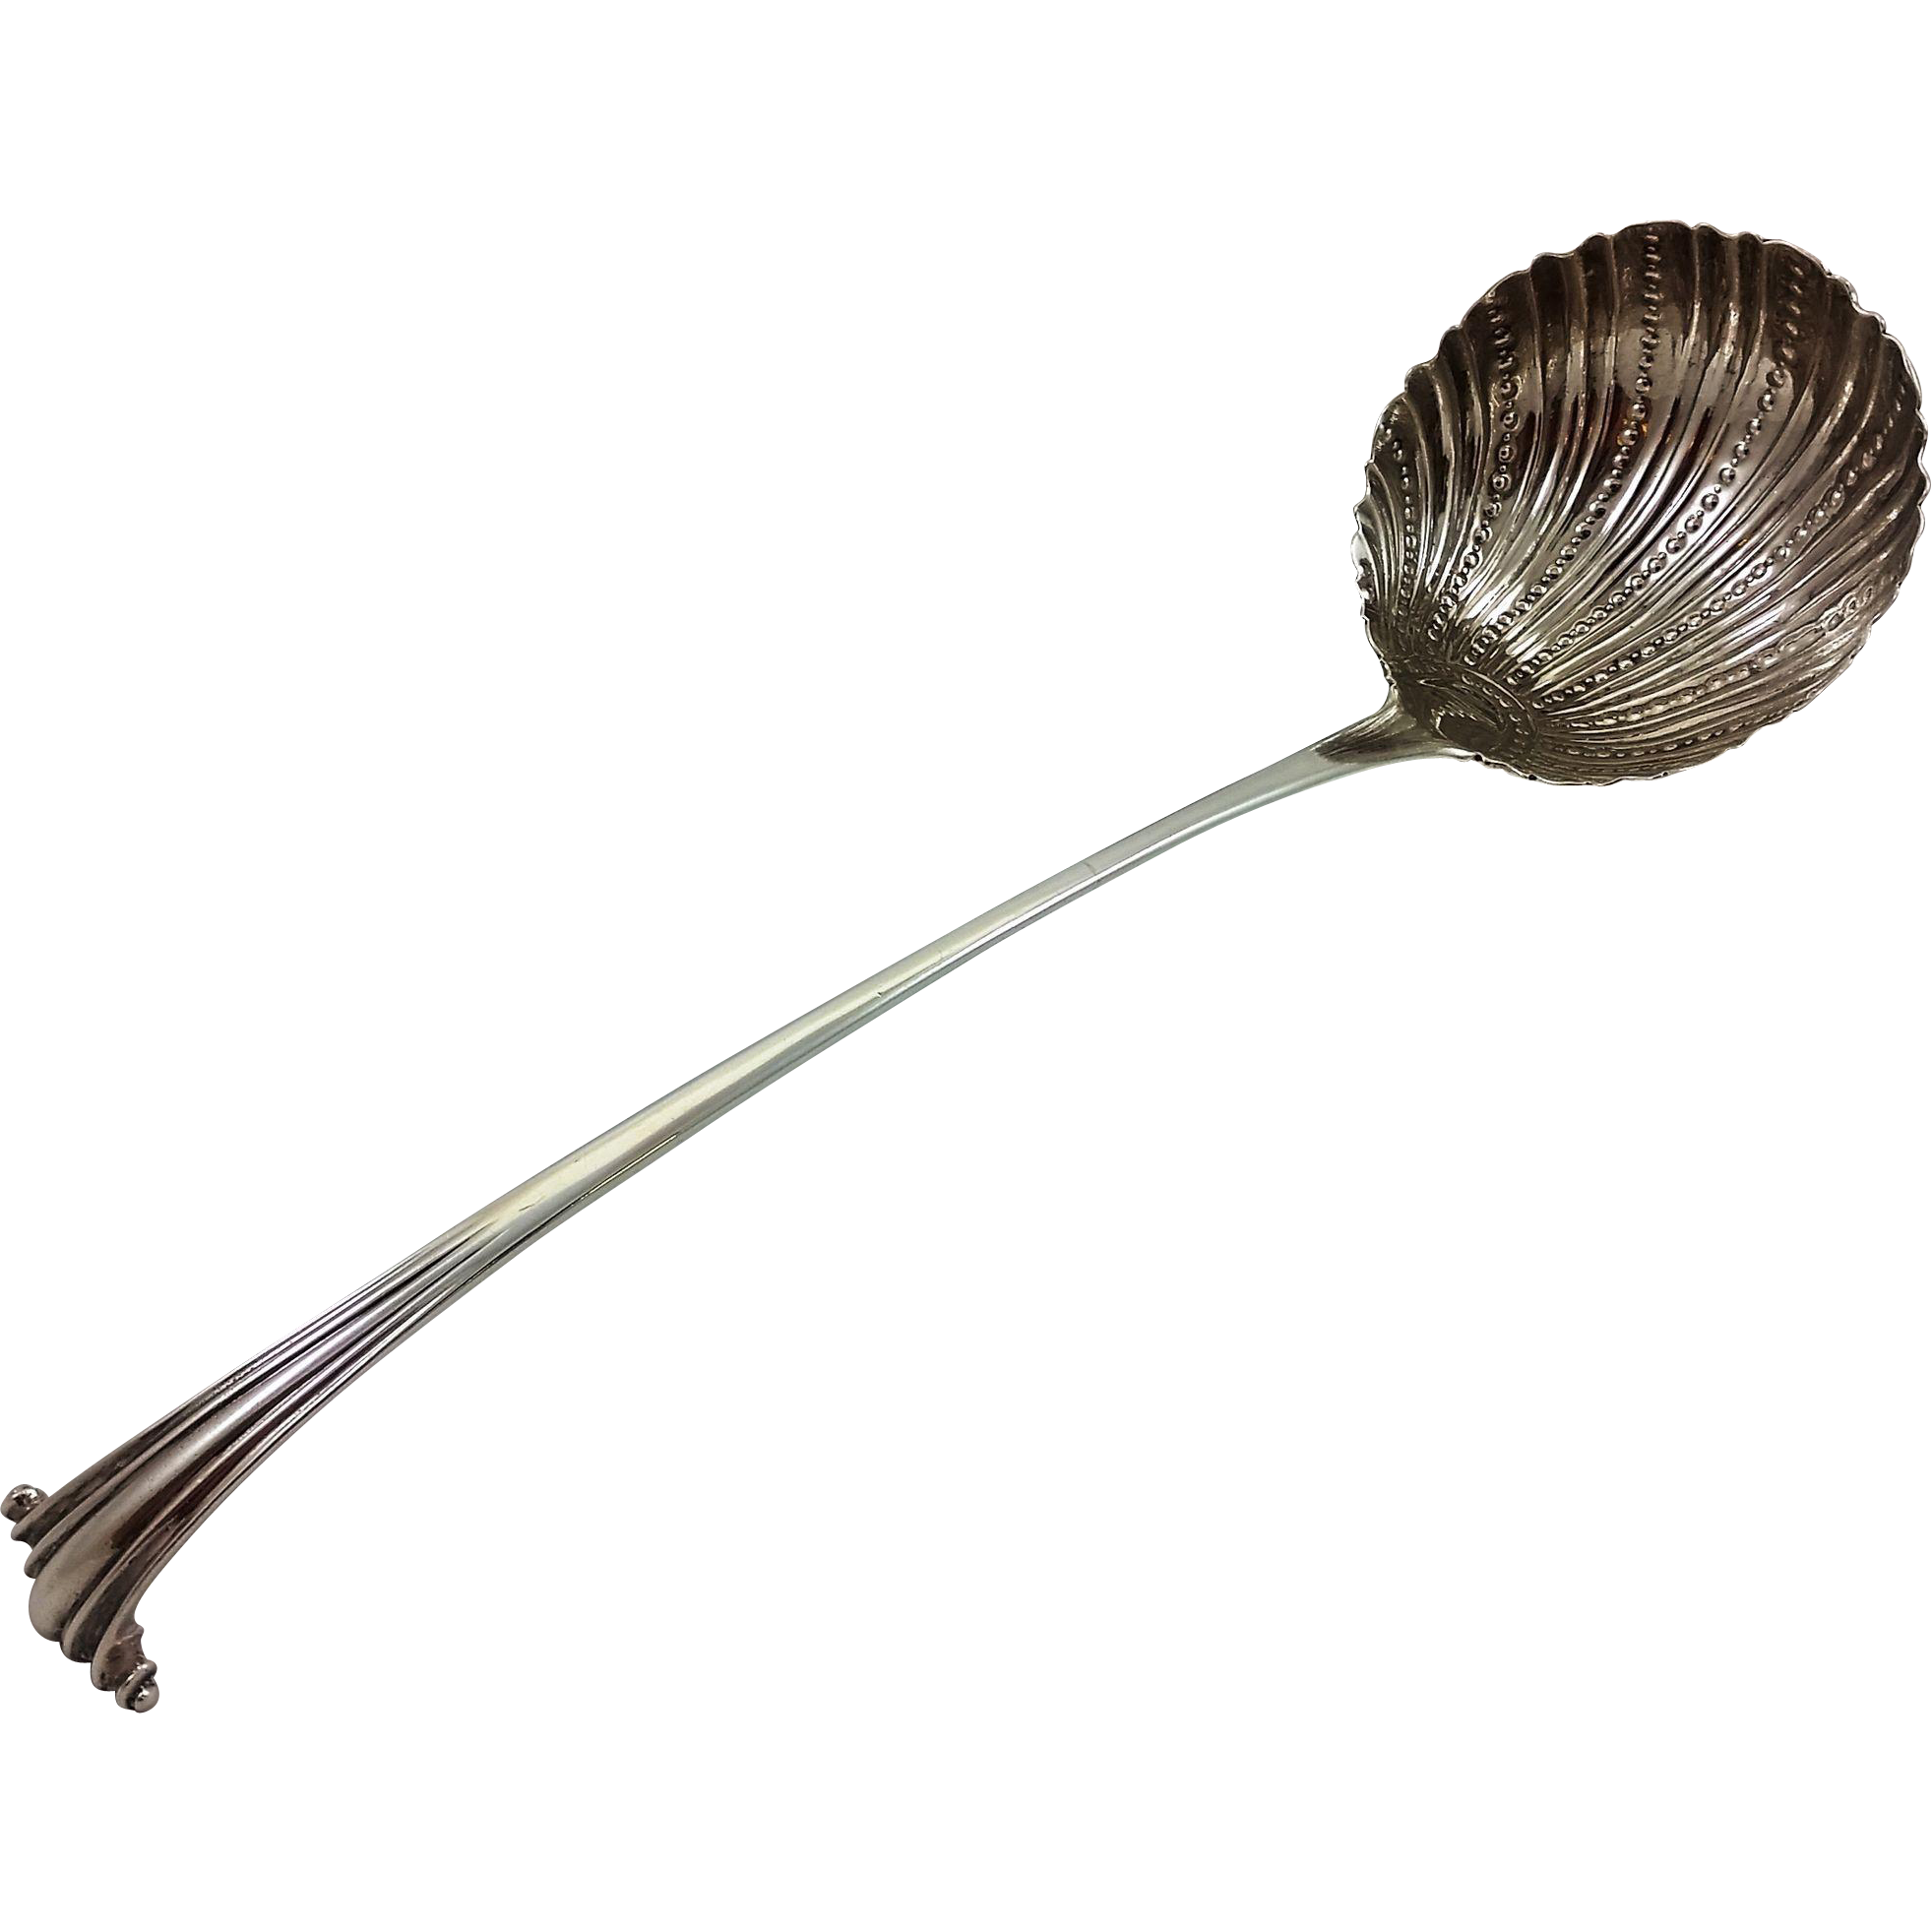 English sterling soup ladle in Onslow pattern c. 1750s